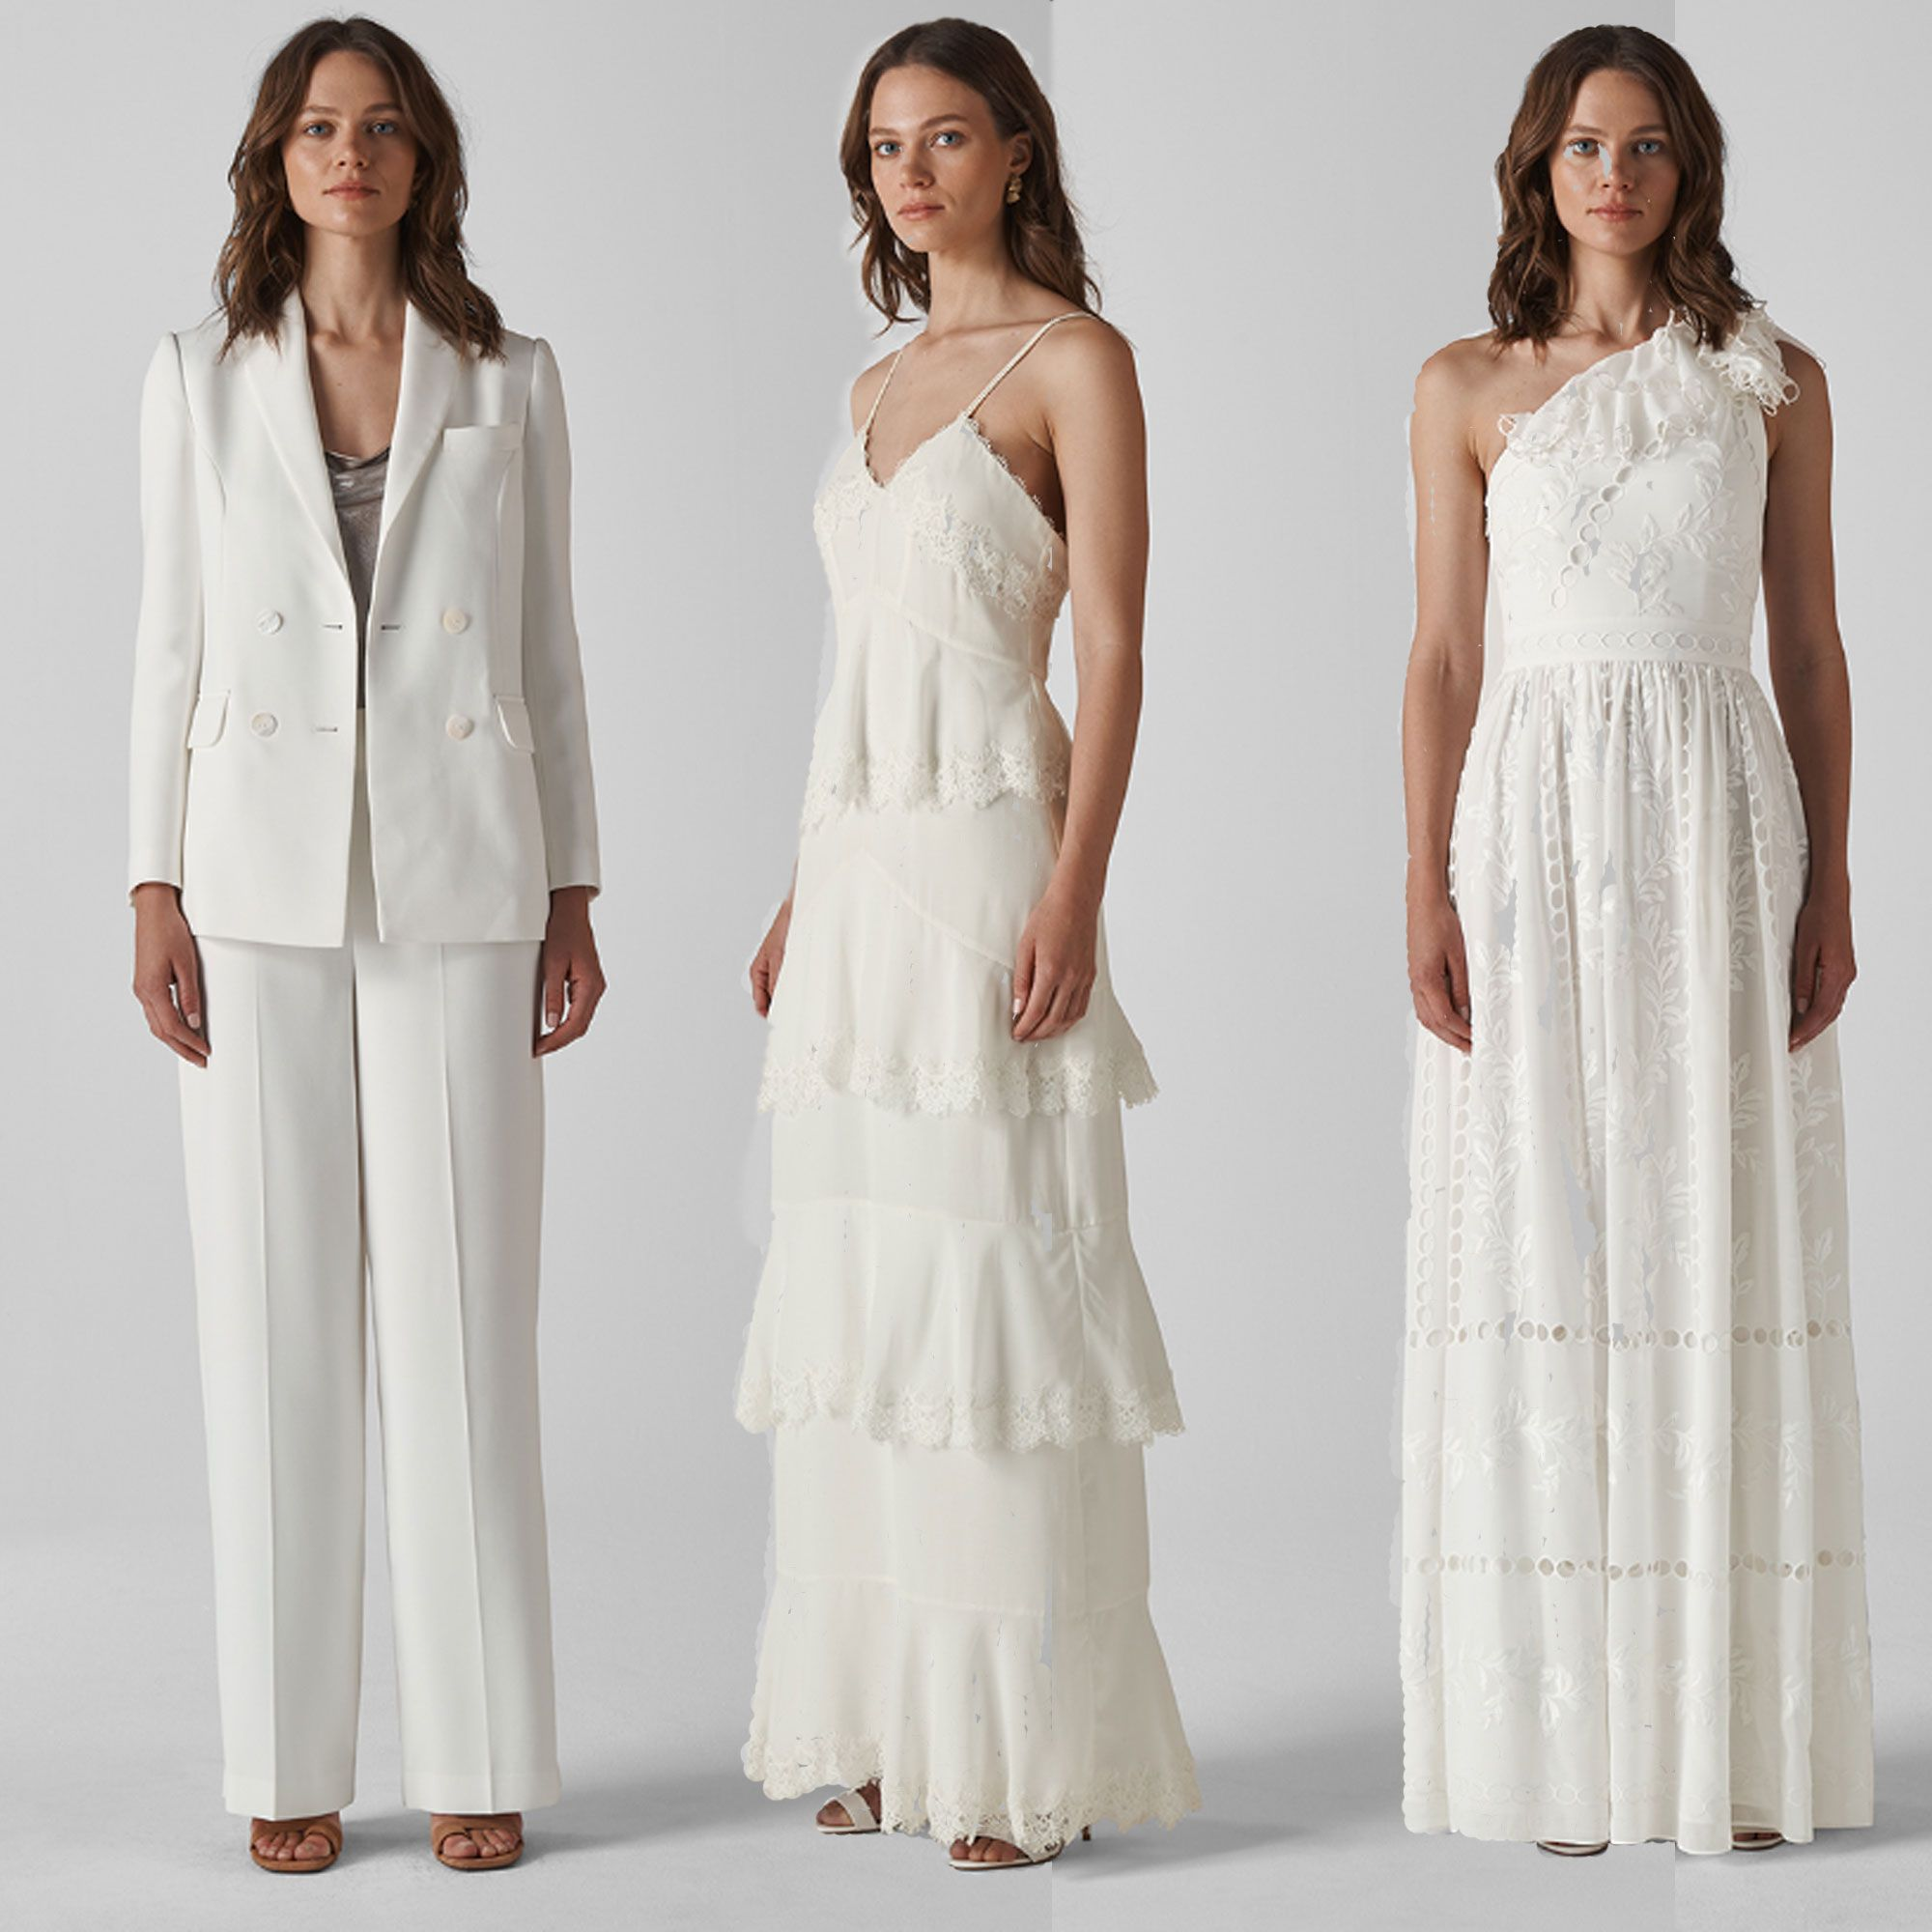 high street wedding dresses, whistles